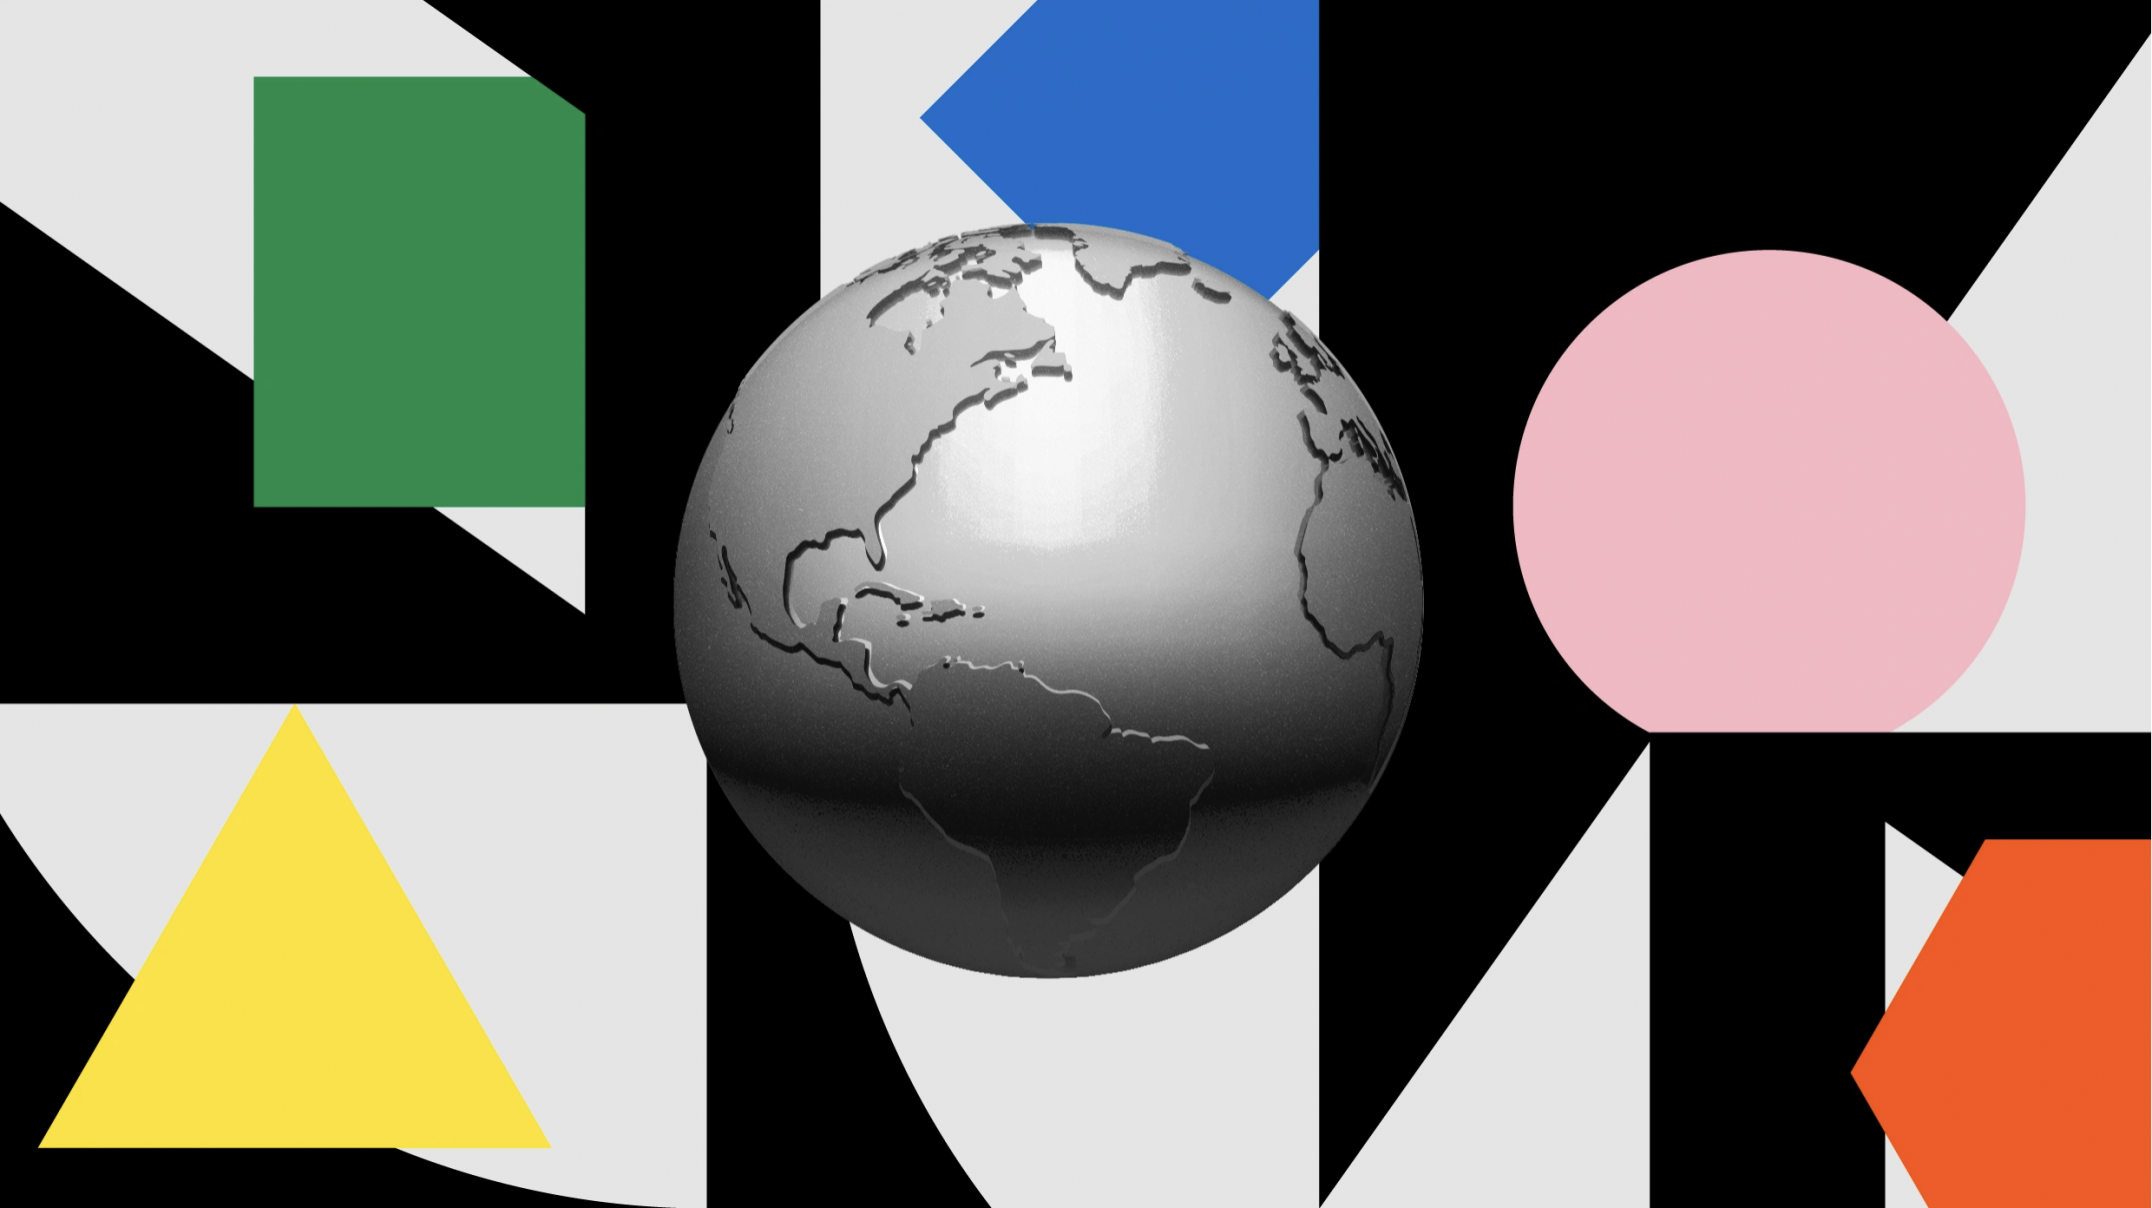 gray 3D globe of Earth in the center of a collage of black, white and brightly colored shapes